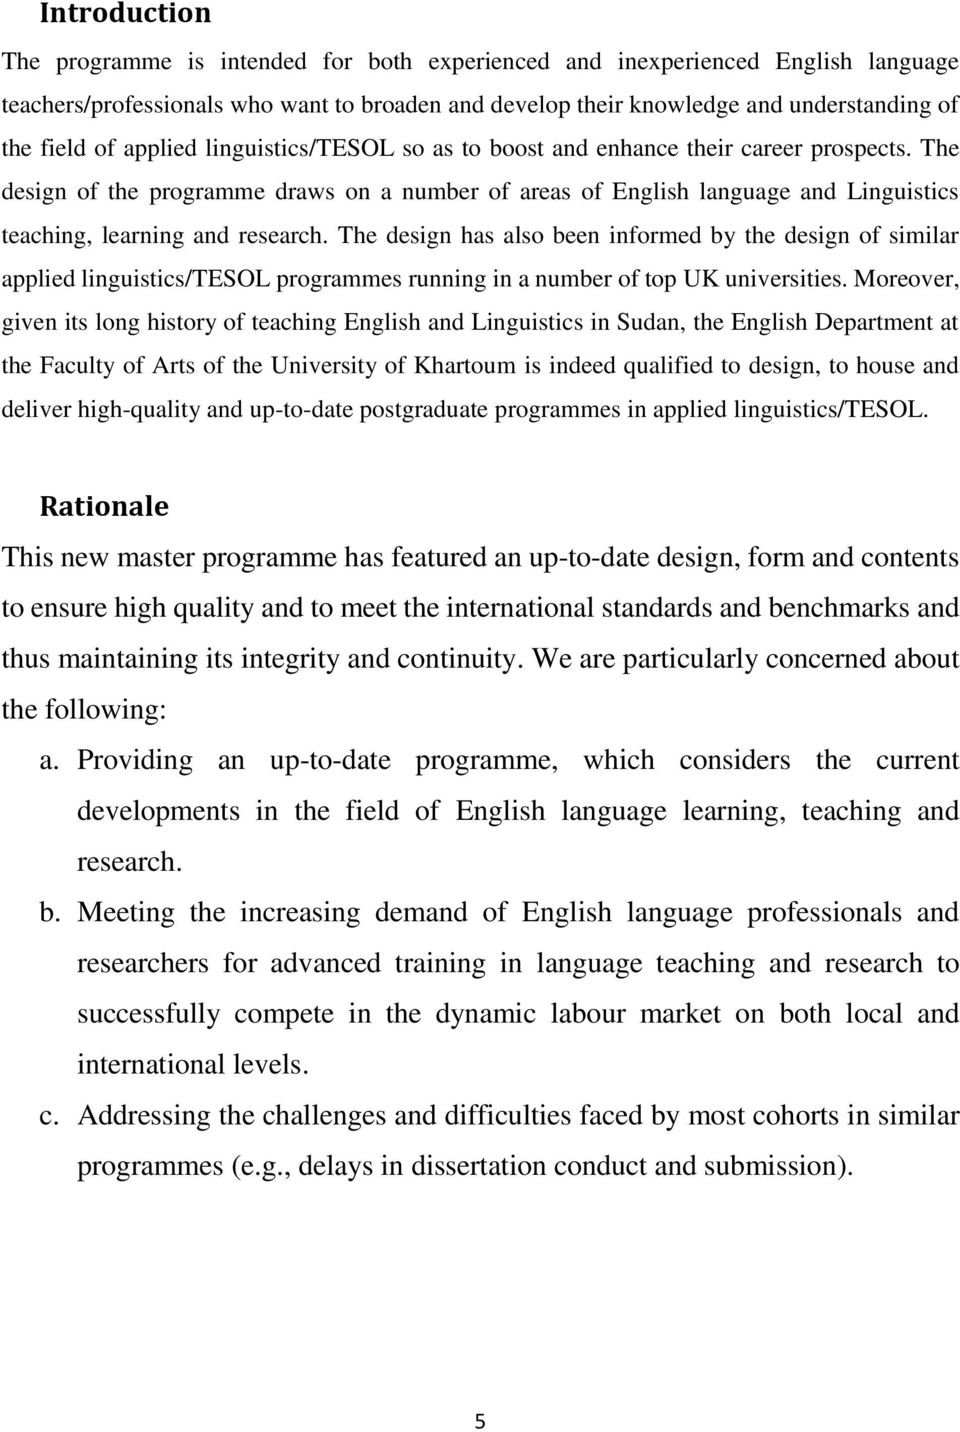 The design has also been informed by the design of similar applied linguistics/tesol programmes running in a number of top UK universities.